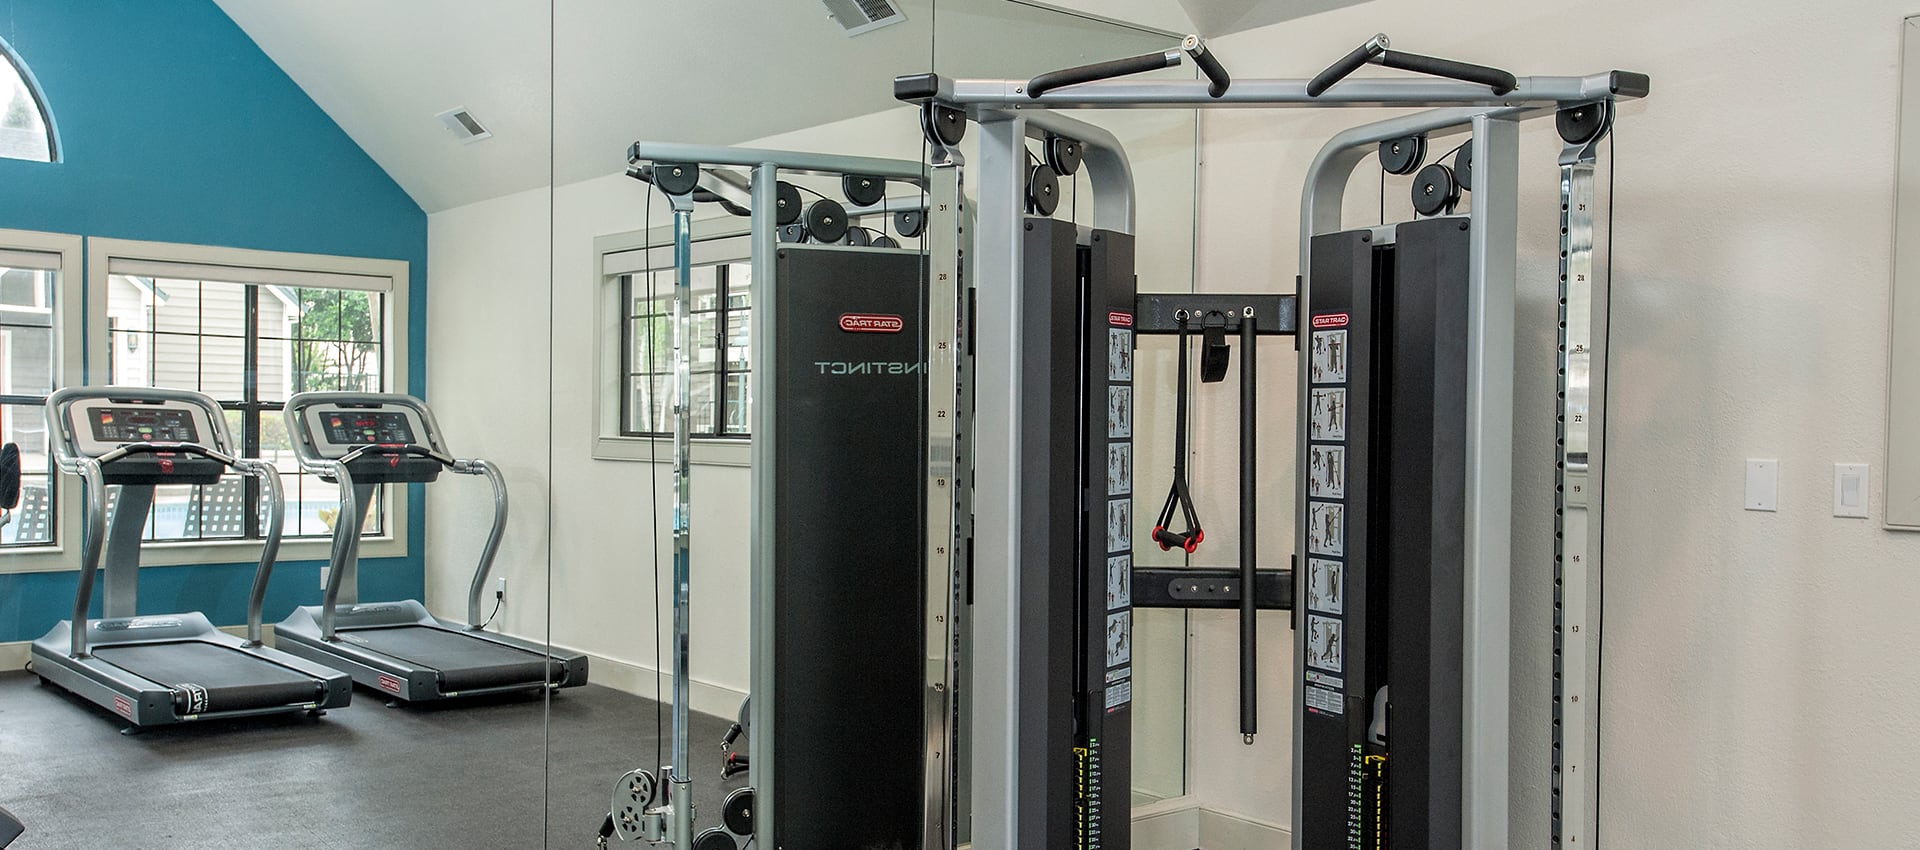 Fitness machines at Reserve at Capital Center Apartment Homes in Rancho Cordova, CA